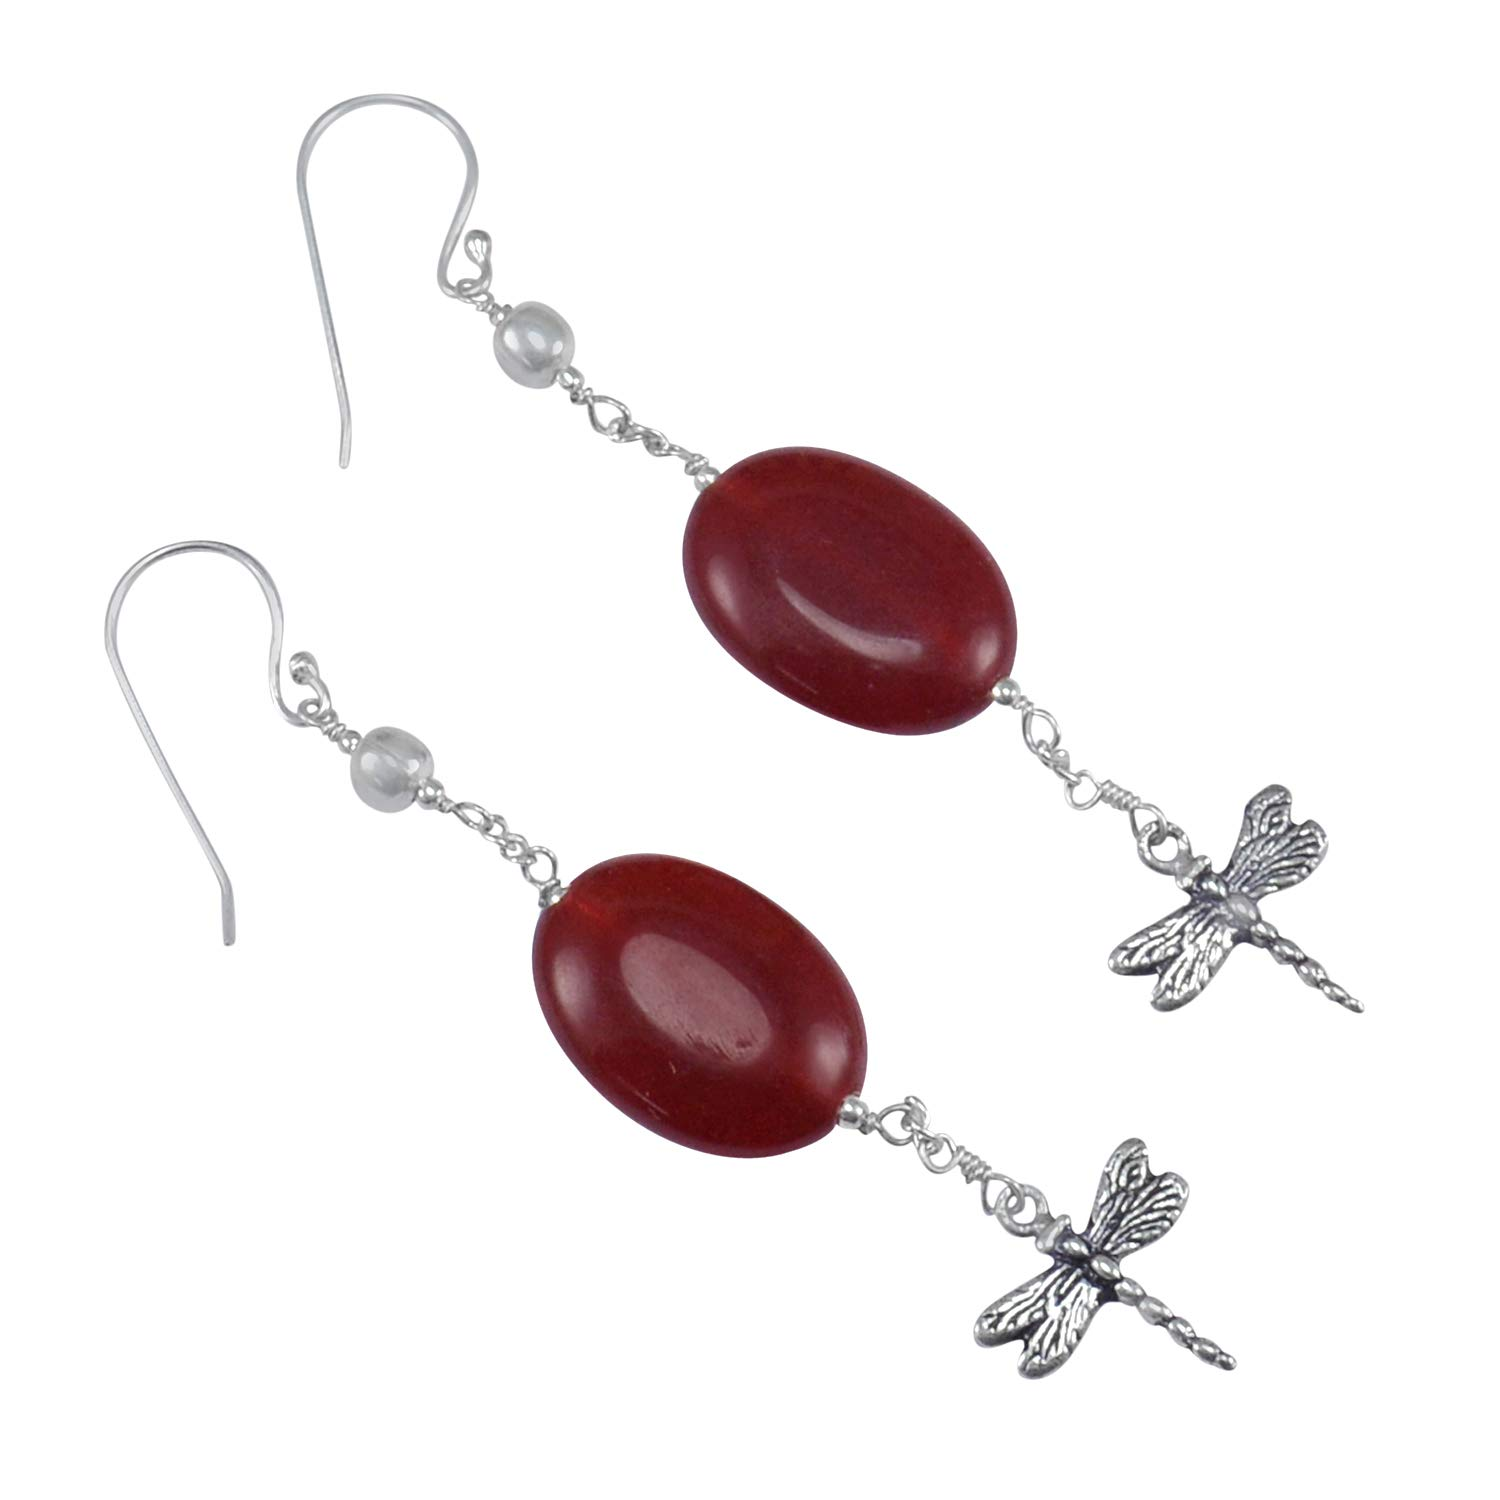 Earring WithButterfly Charm Jaipur Rajasthan India Handmade Jewelry Manufacturer Handmade Red Onyx 925 Sterling Silver